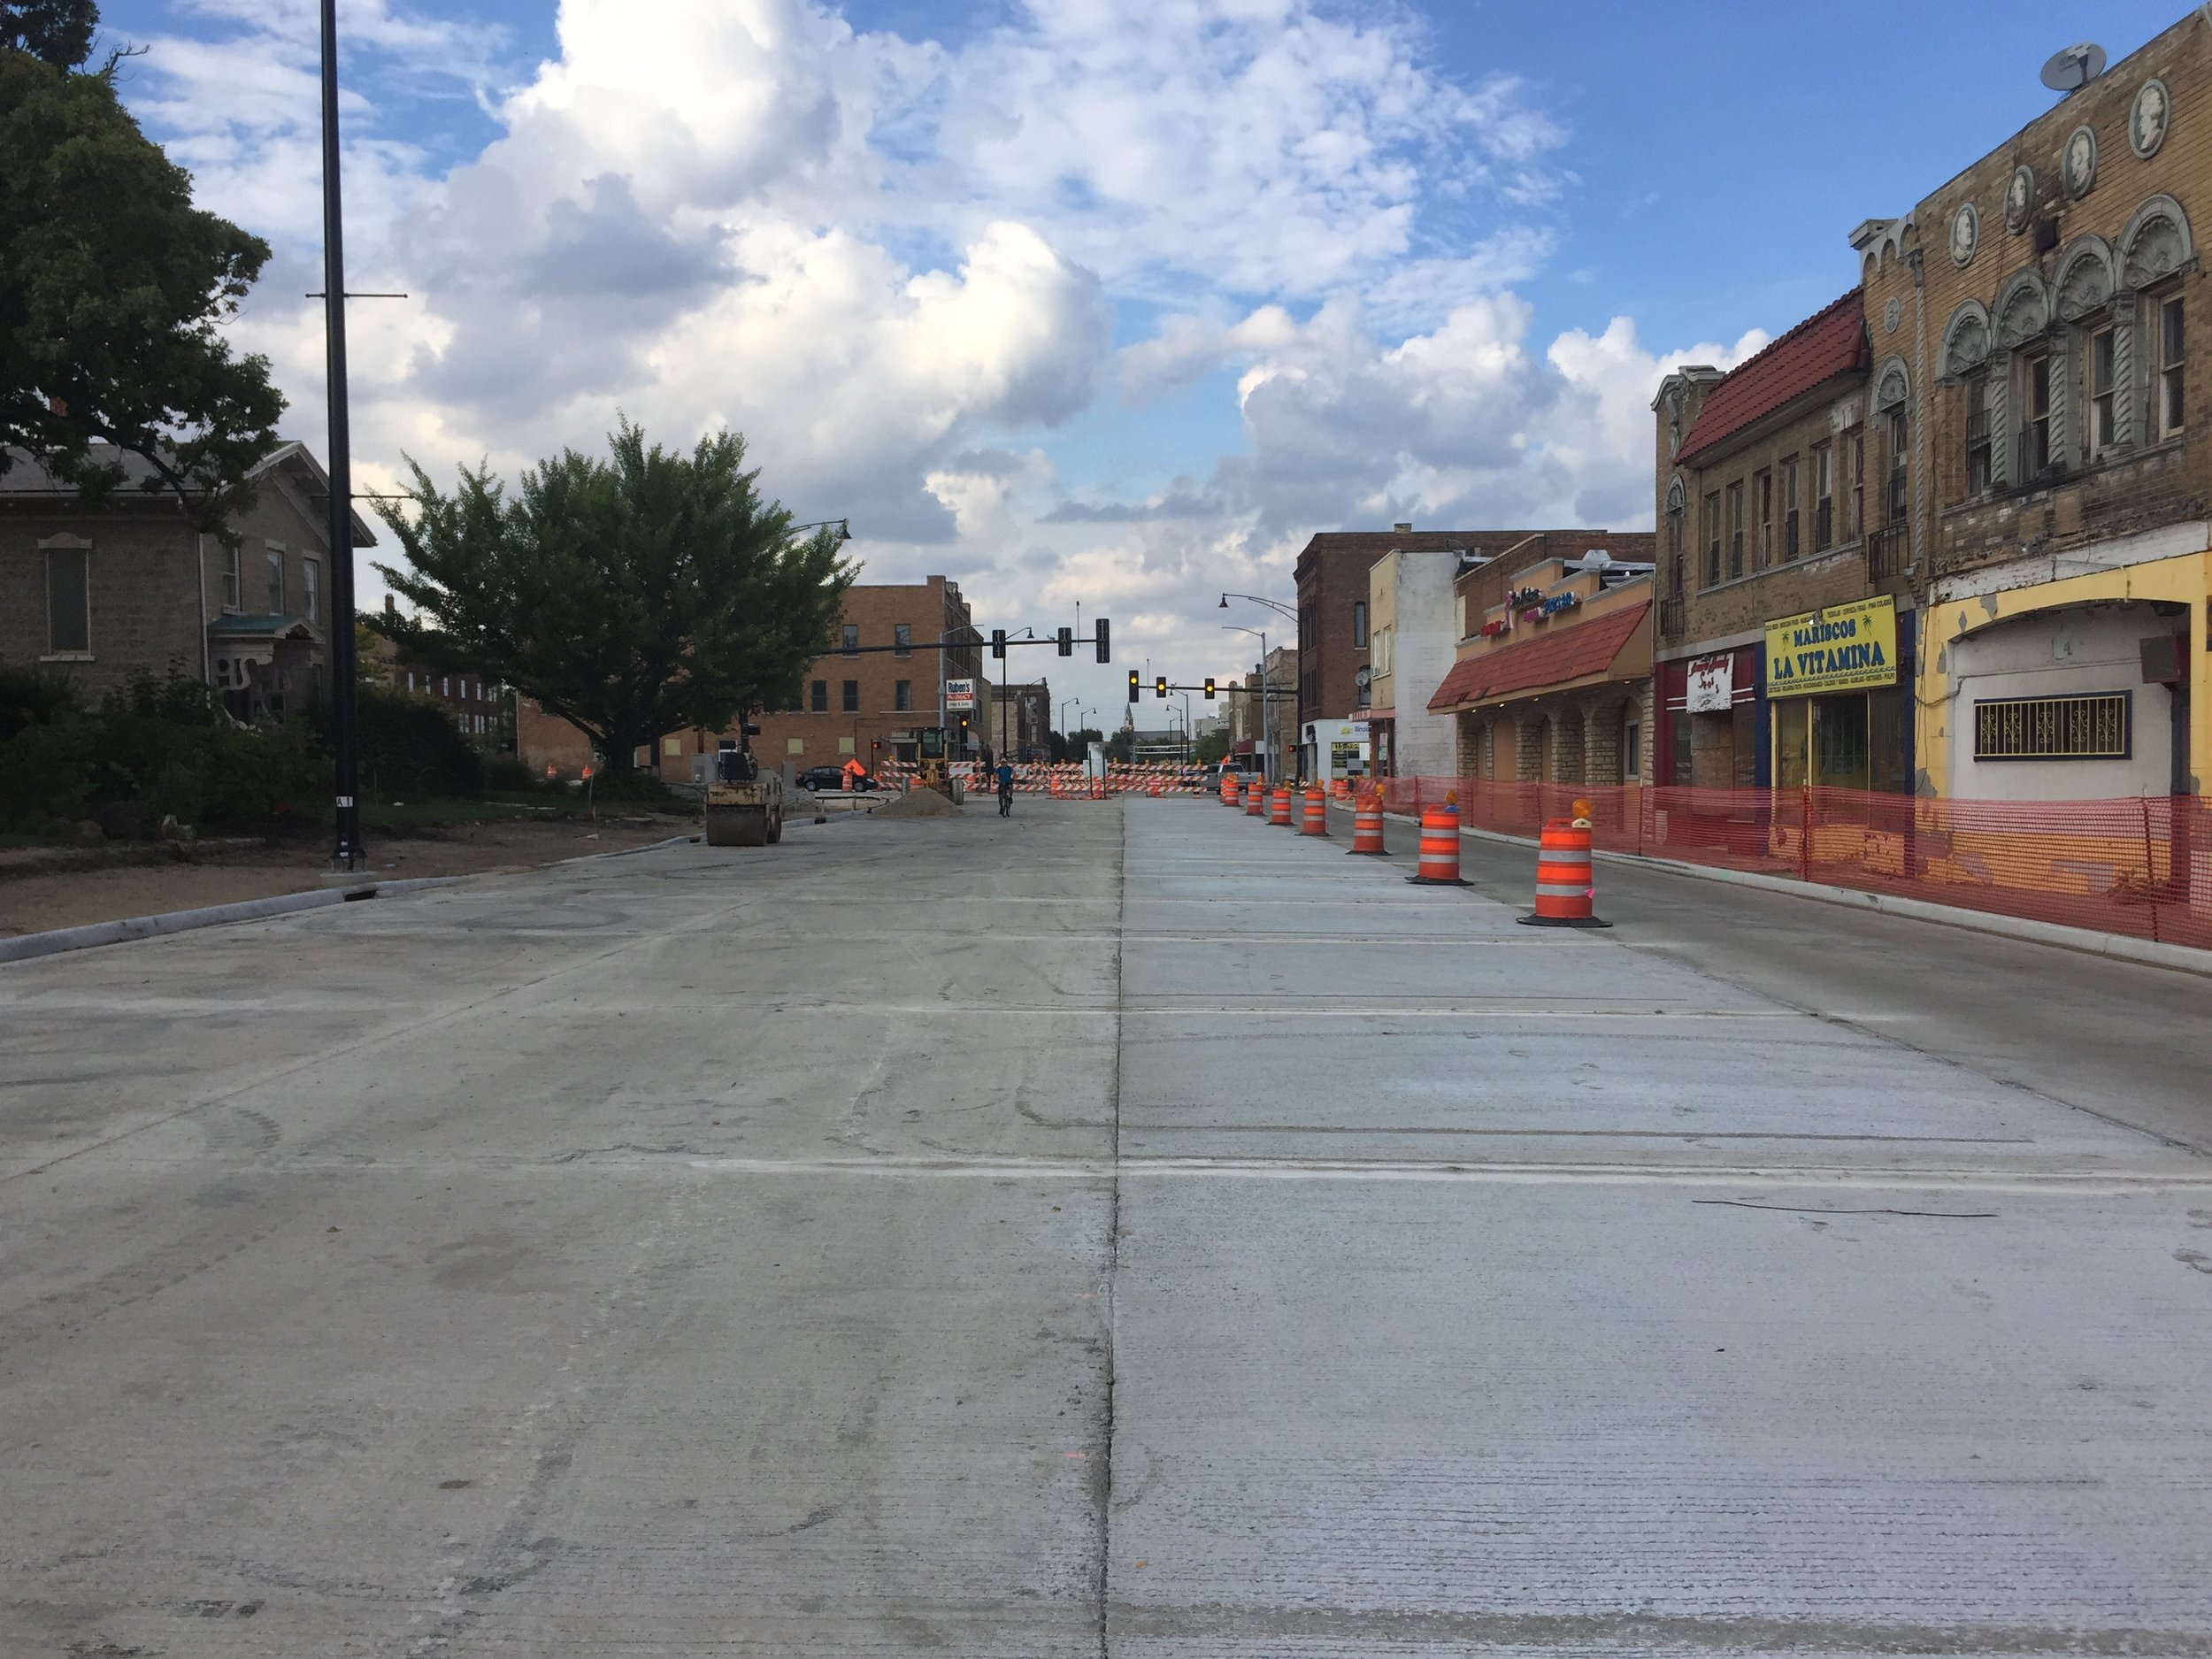 South Main Street, looking north from Morgan Street.  IDOT recently completed this roadway project which includes four 12' travel lanes.  12' lanes are wide, especially given that this stretch is in a compact, walkable area of our city and is less than one mile from city center.